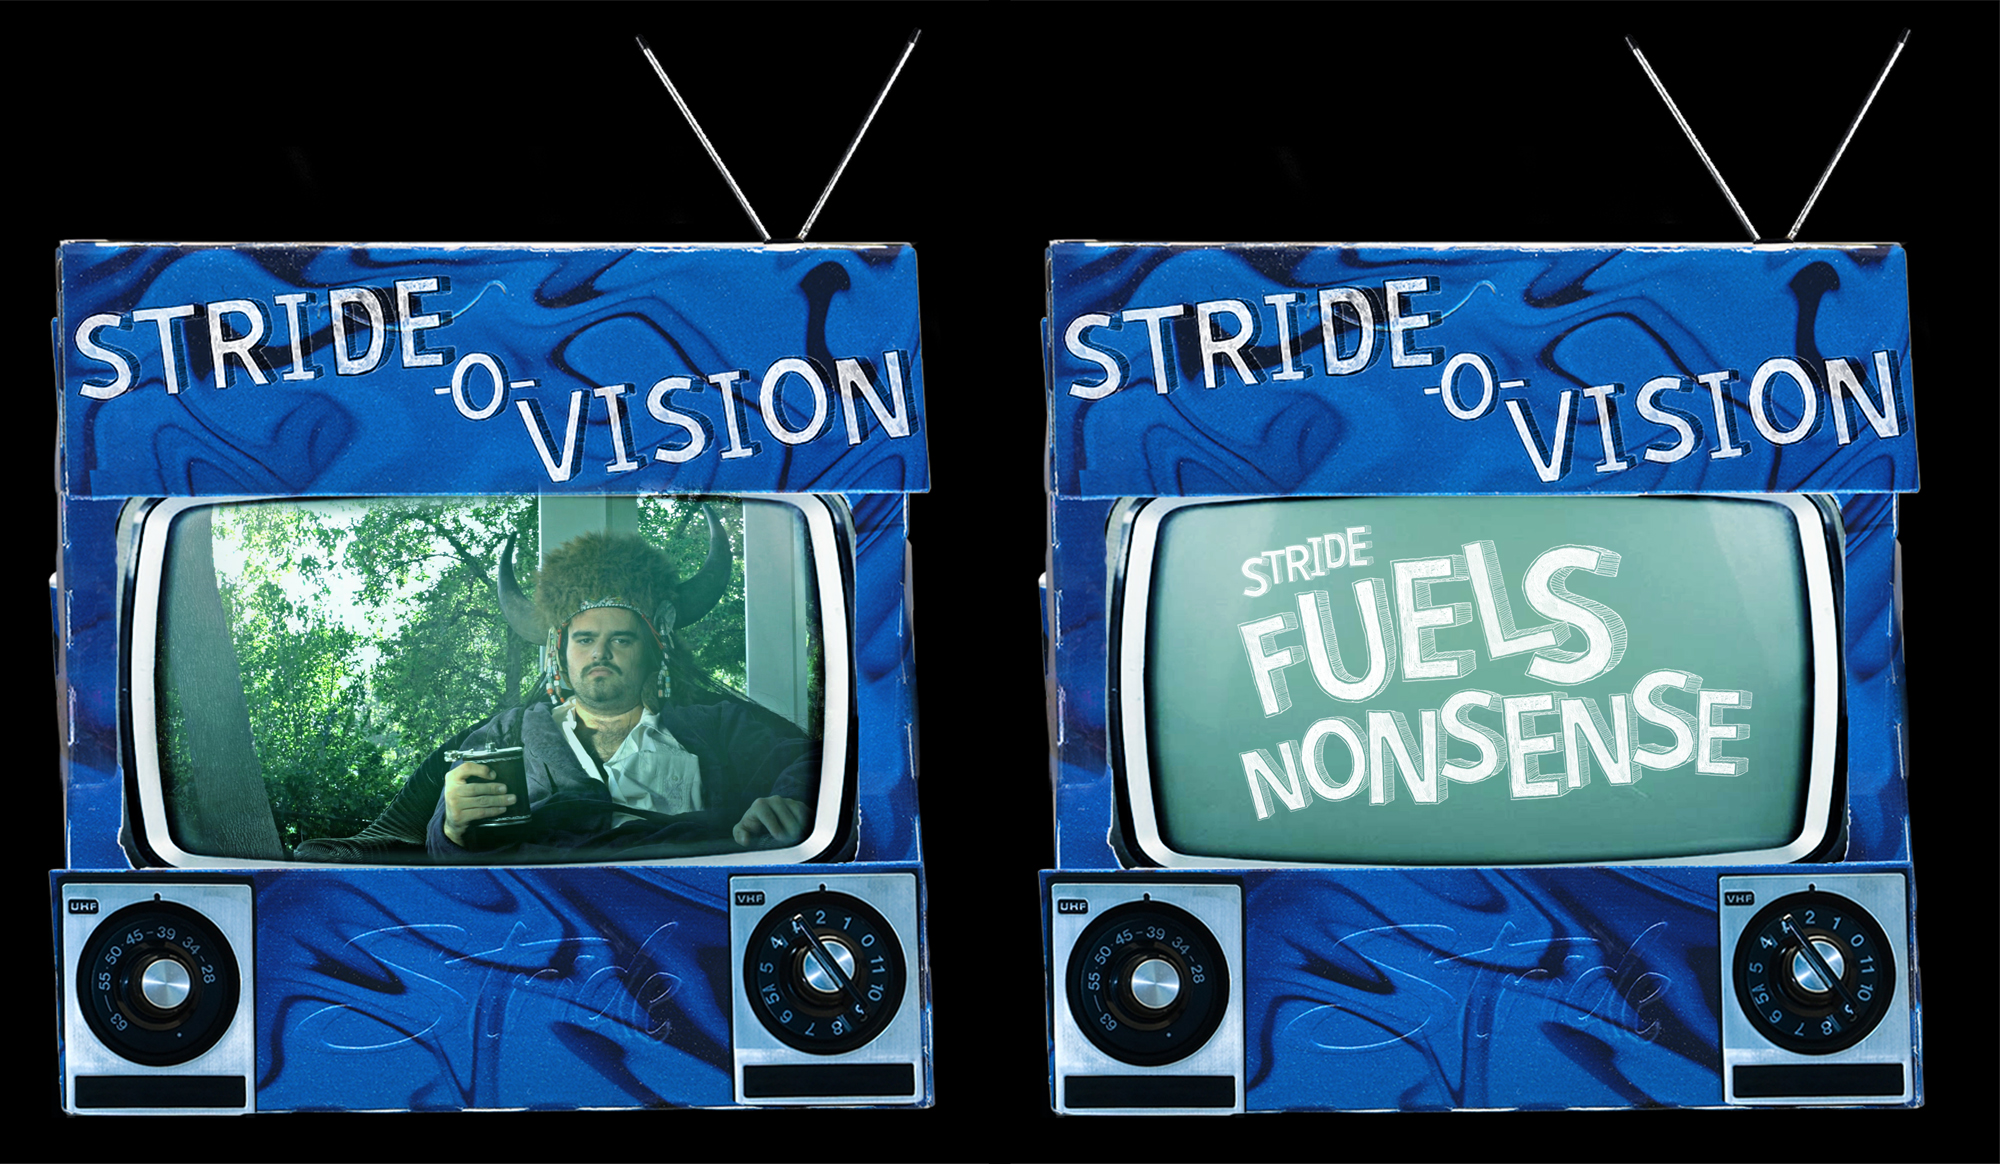 Interactive Component:  Hey, Kids!  You too can share your innermost stride confessionals through our youtube app, Stride-O-Vision!  Just use your webcam, and bare your heart and soul for a chance at fame and fortune.